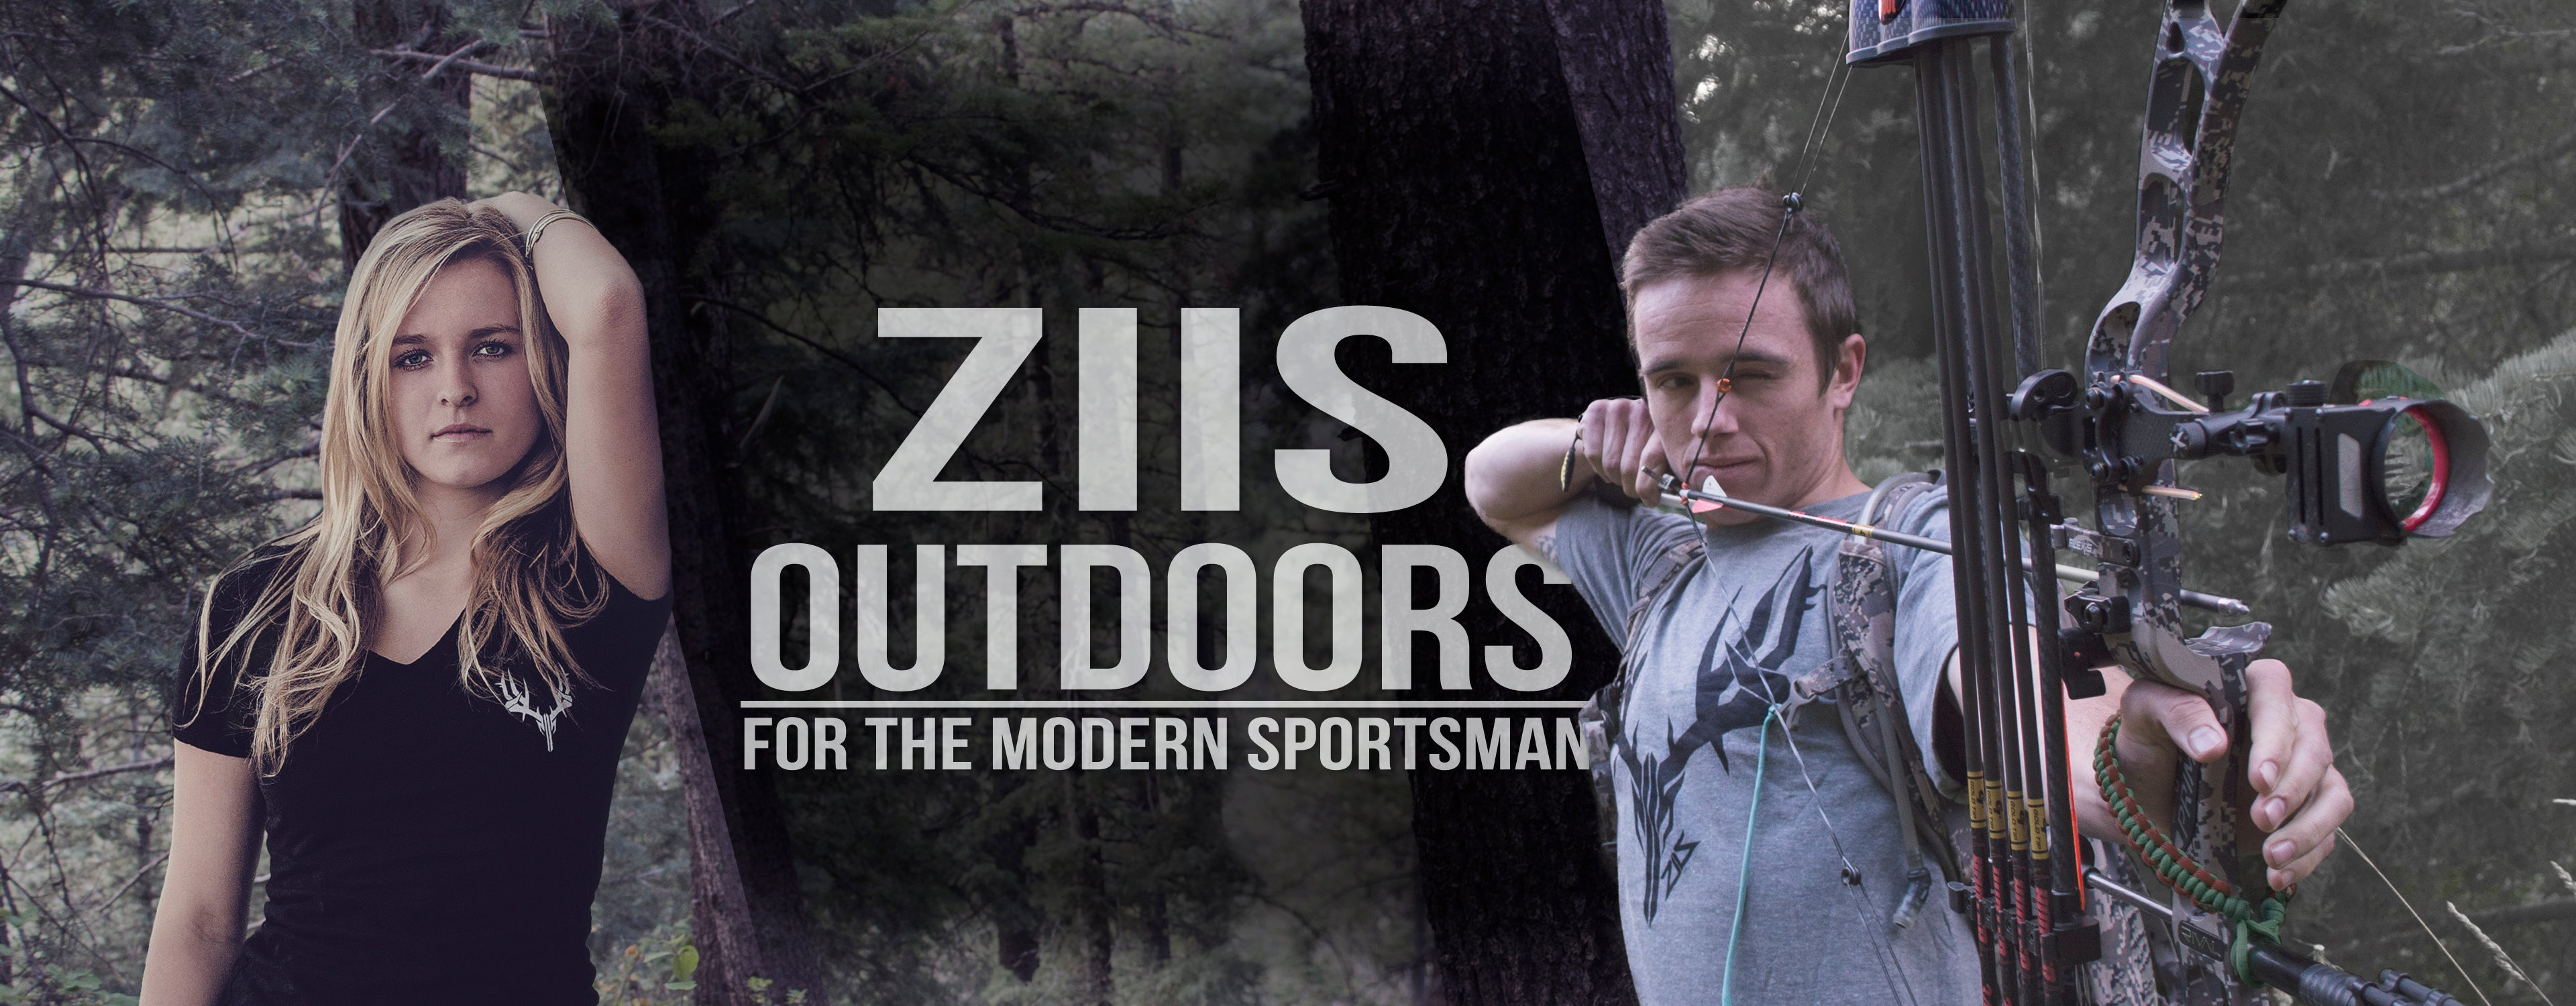 Man bowhunting with Prime bow in Ziis Apparel and sitka